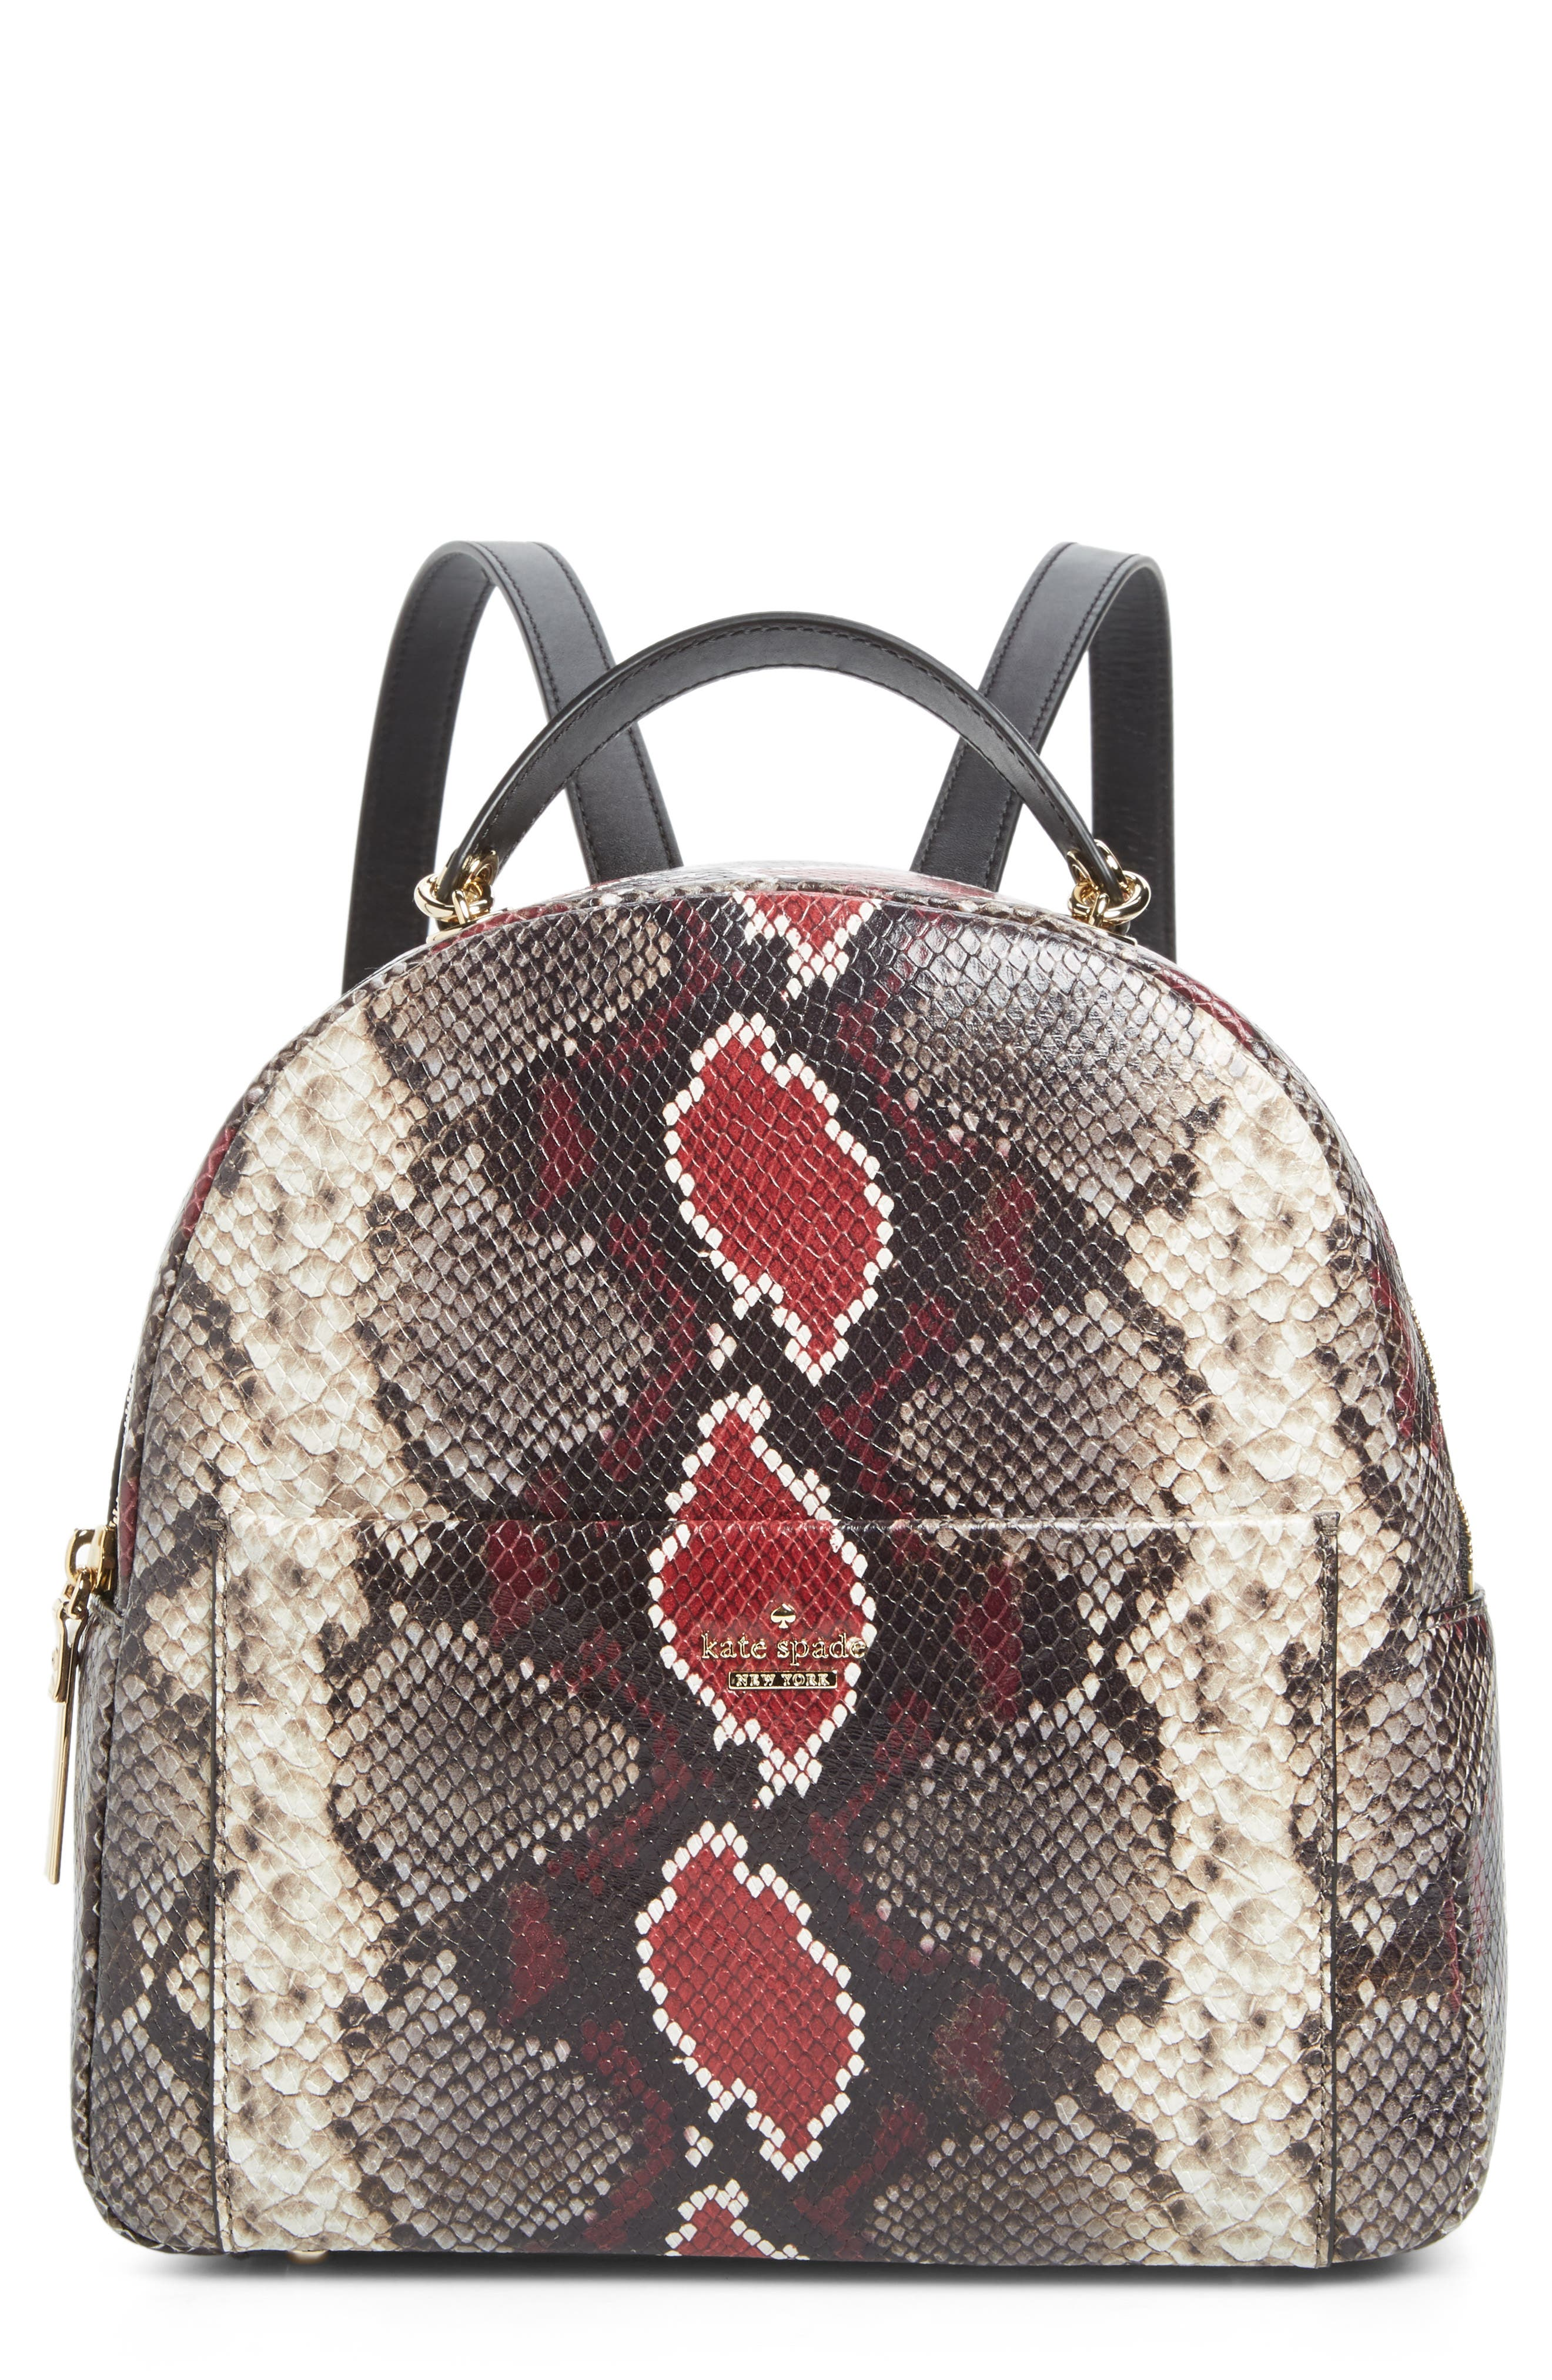 reese park - ethel snake embossed leather backpack,                             Main thumbnail 1, color,                             200